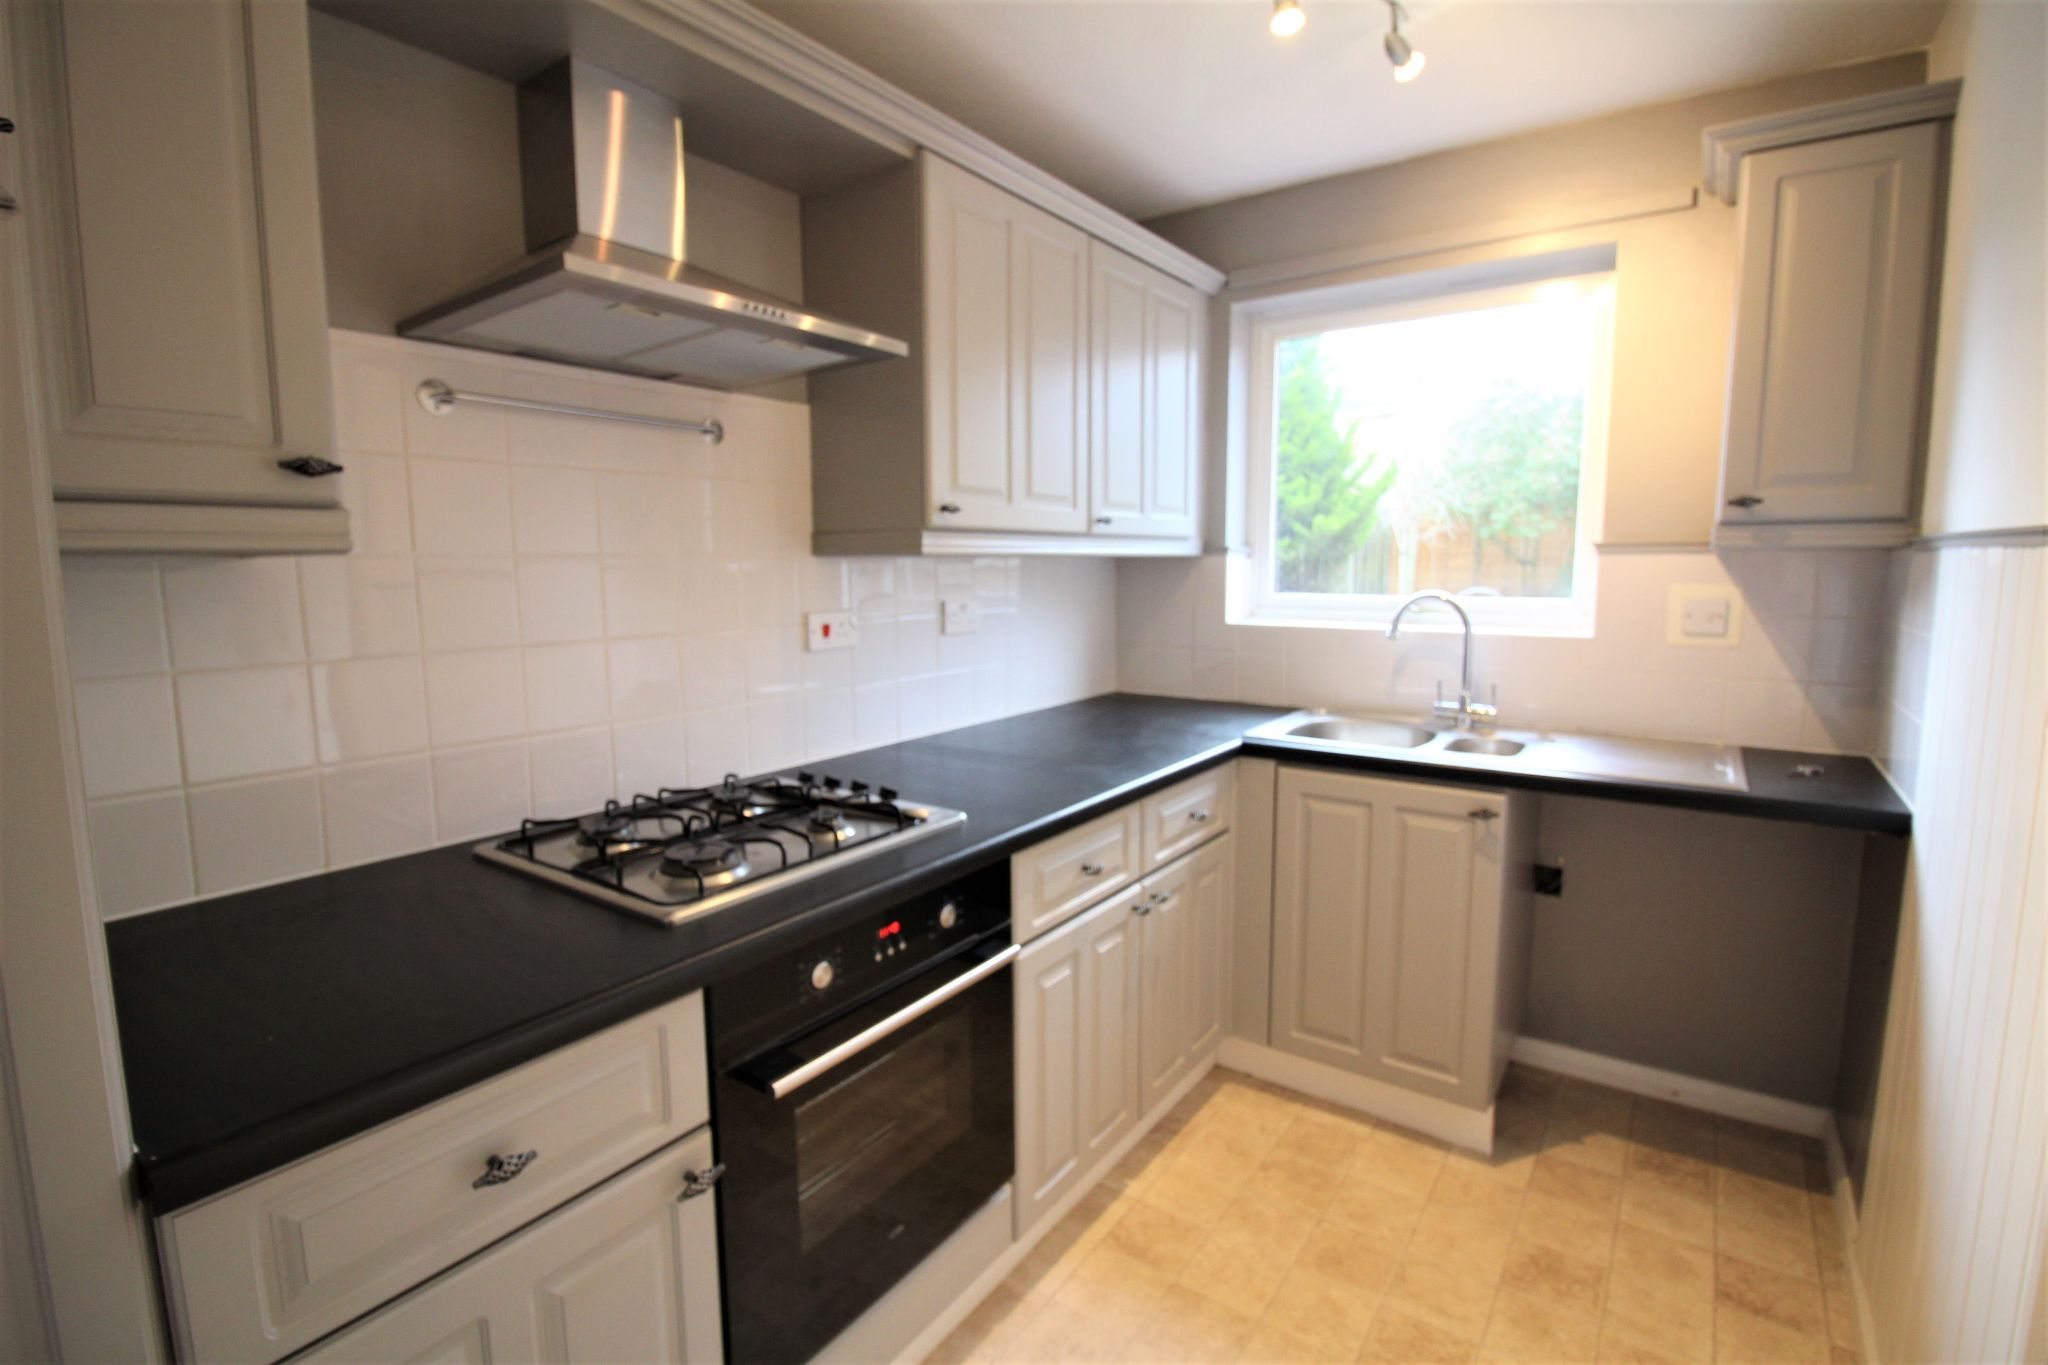 3 bedroom semi-detached house Let Agreed in Solihull - Photograph 5.